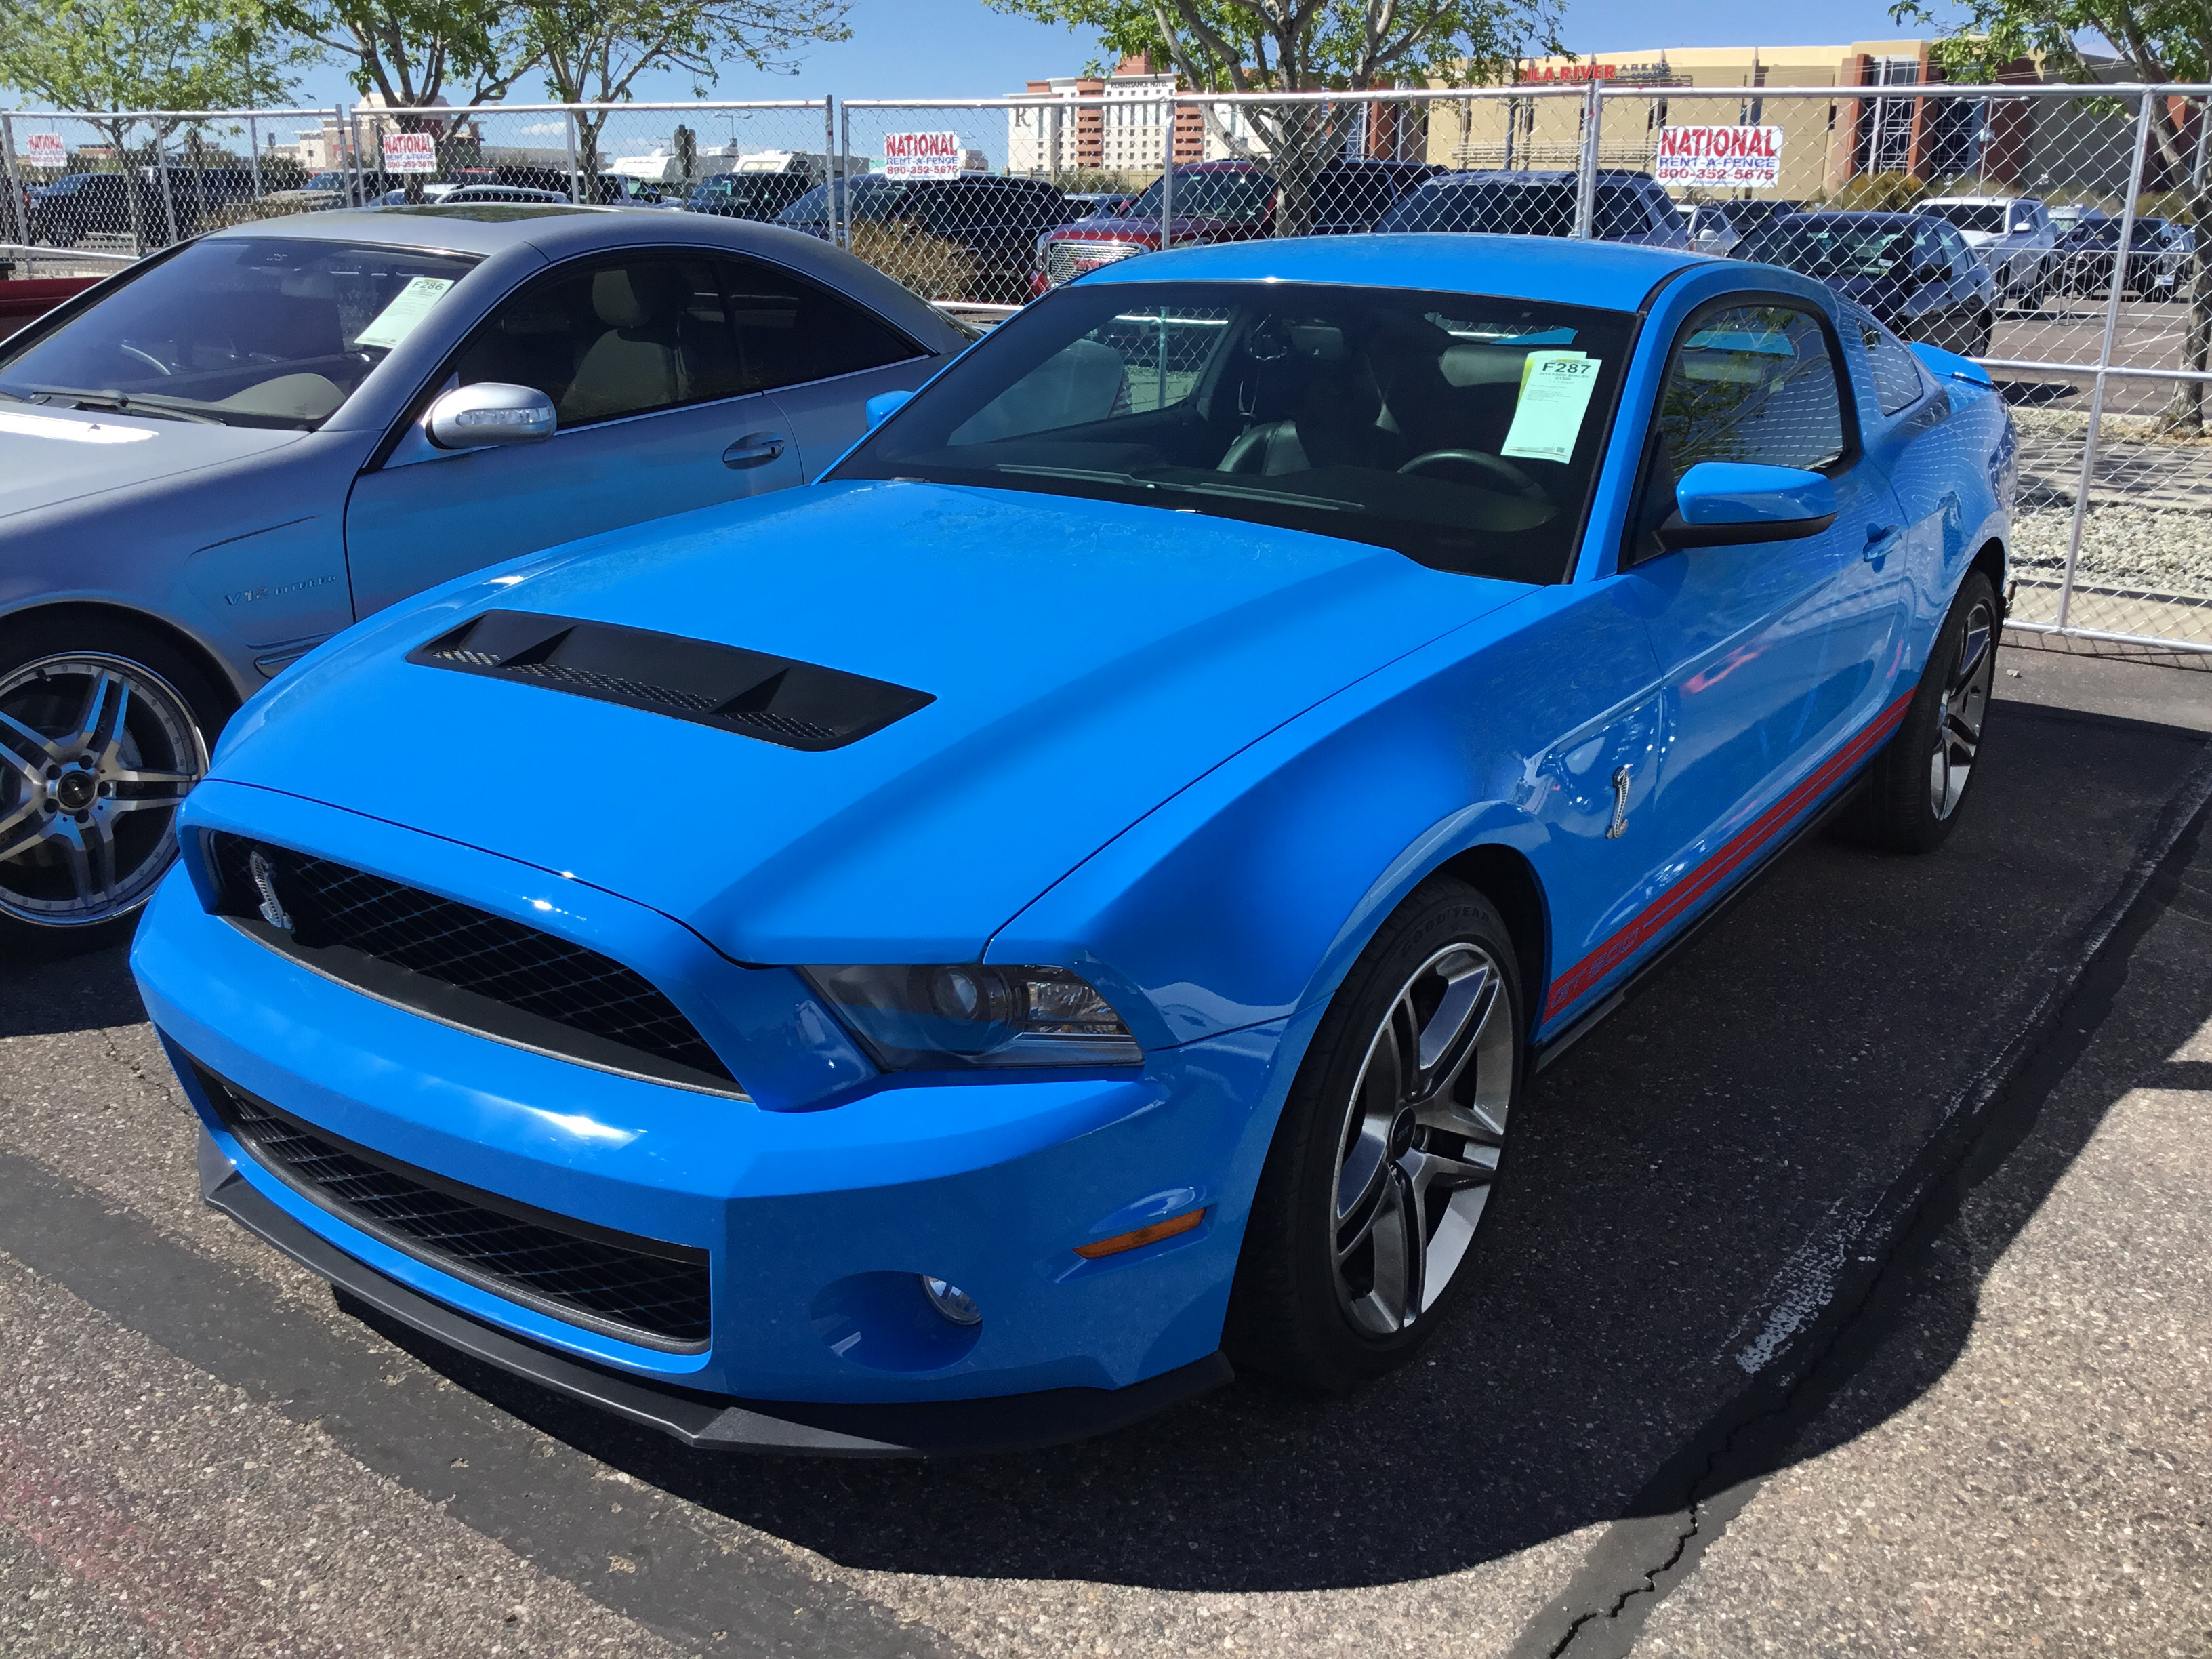 2010 Ford Mustang Cobra Jet Values | Hagerty Valuation Tool®